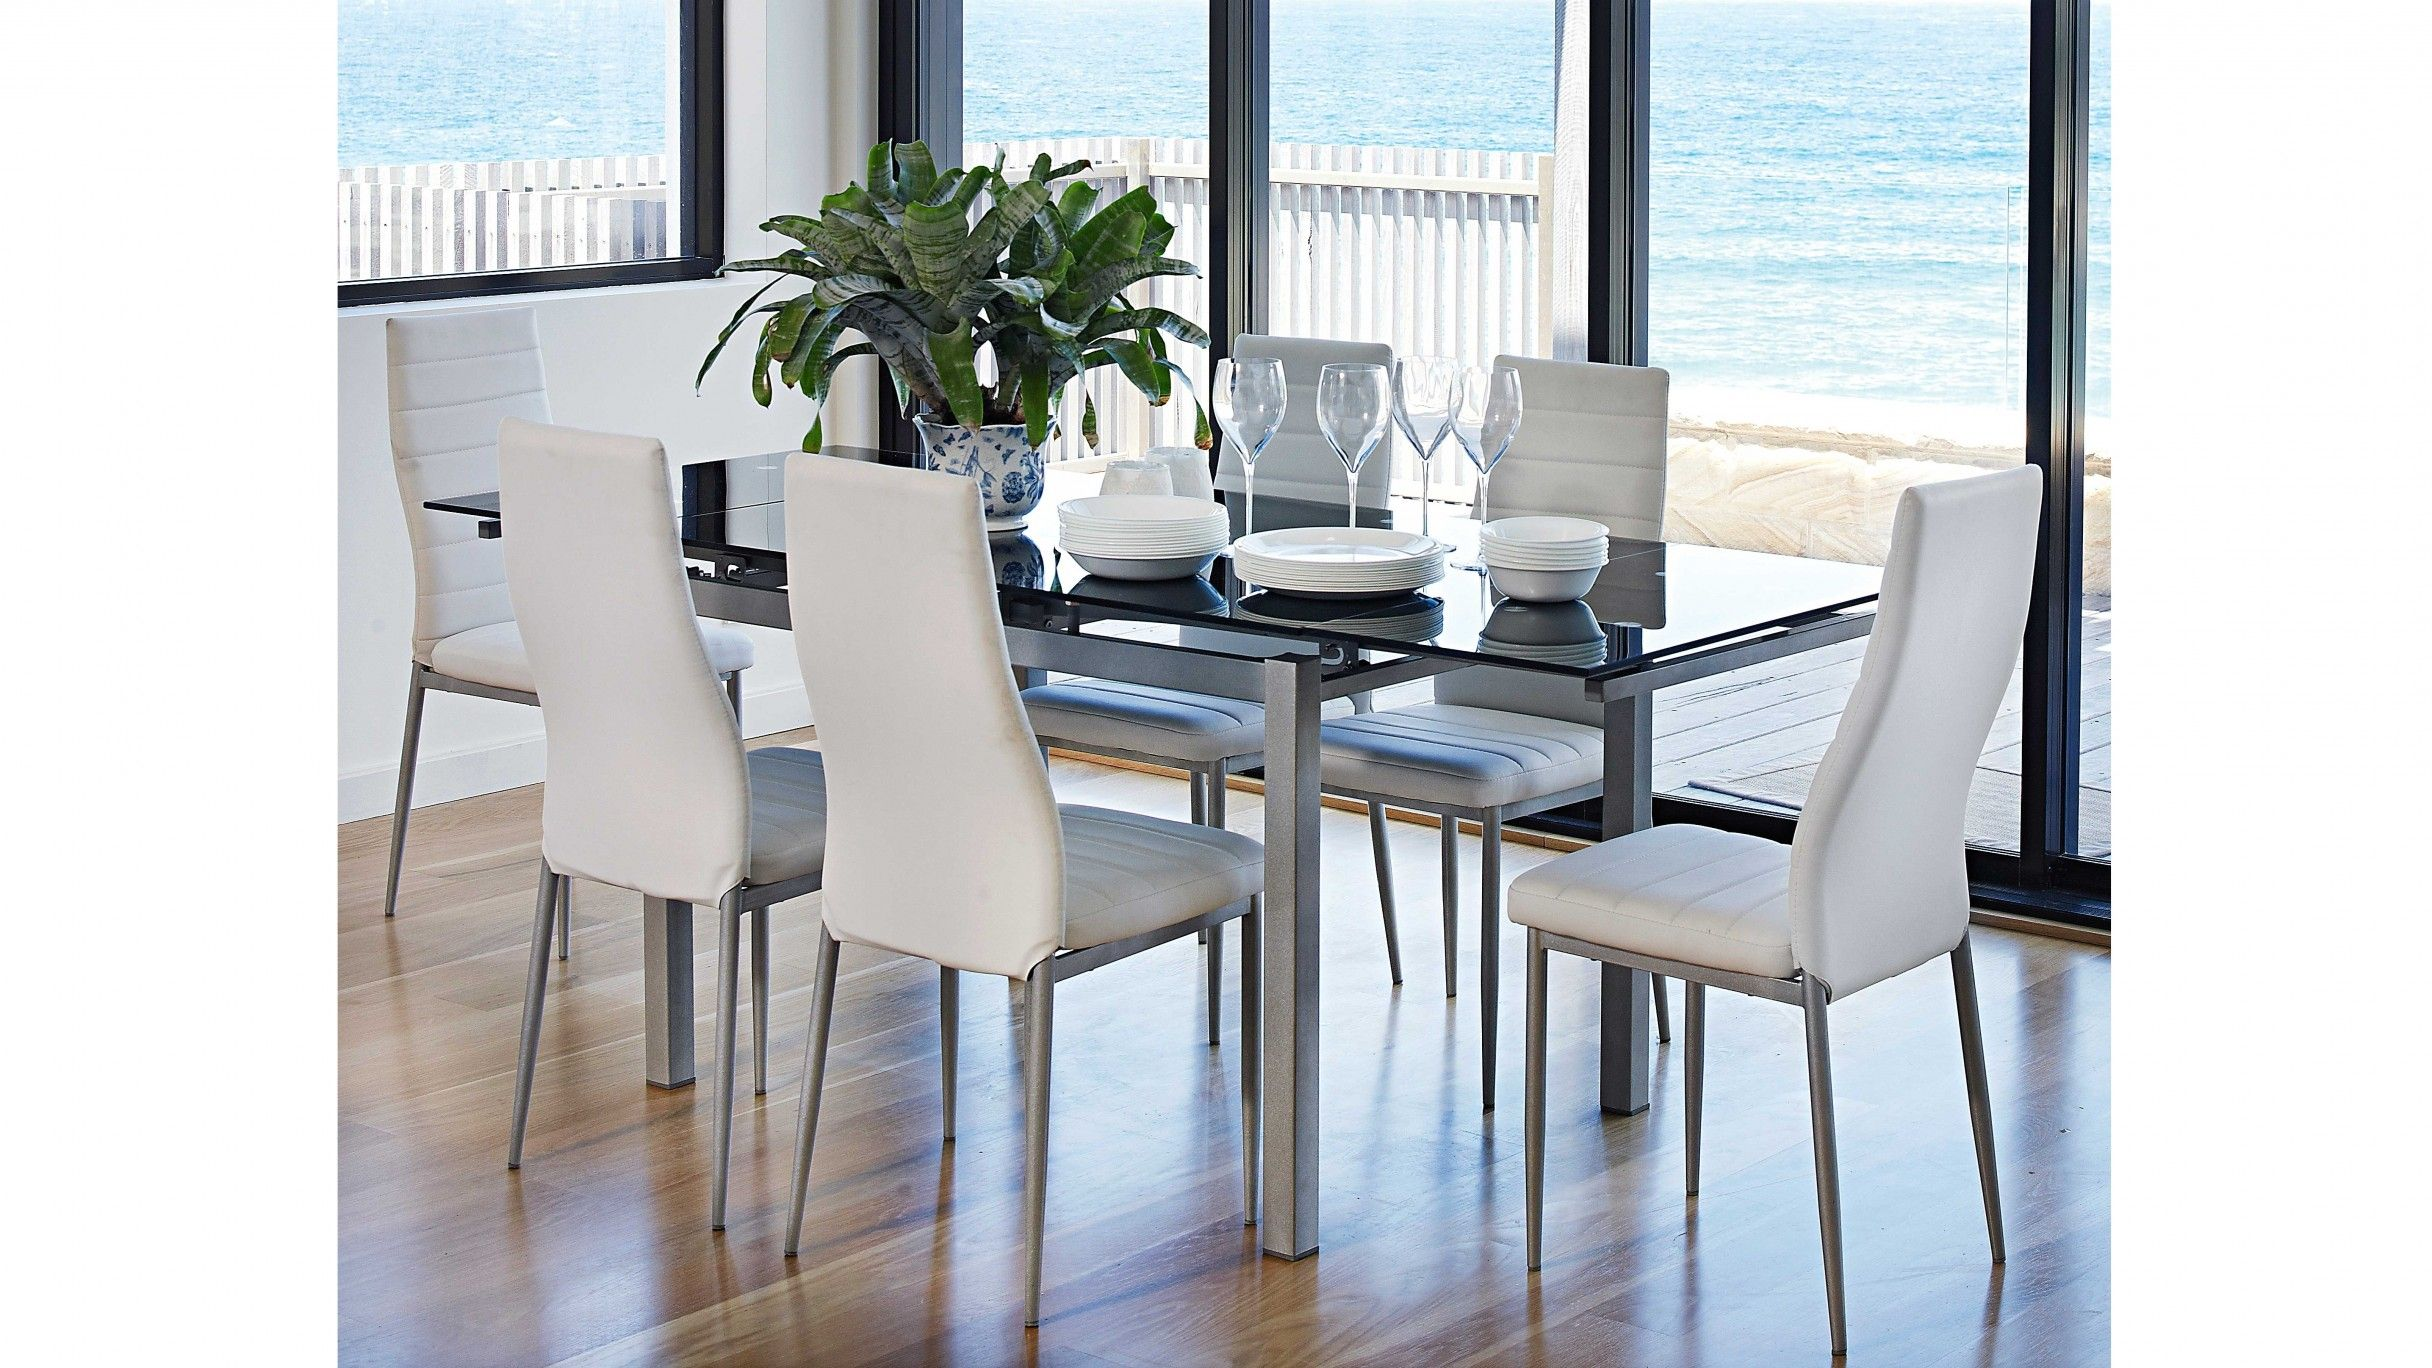 The Sleek European Styling Of Sarah 7 Piece Extension Dining Setting Is Sure To Modernise Any Home Decor Set Includes An Extendable Table And 6 Chairs